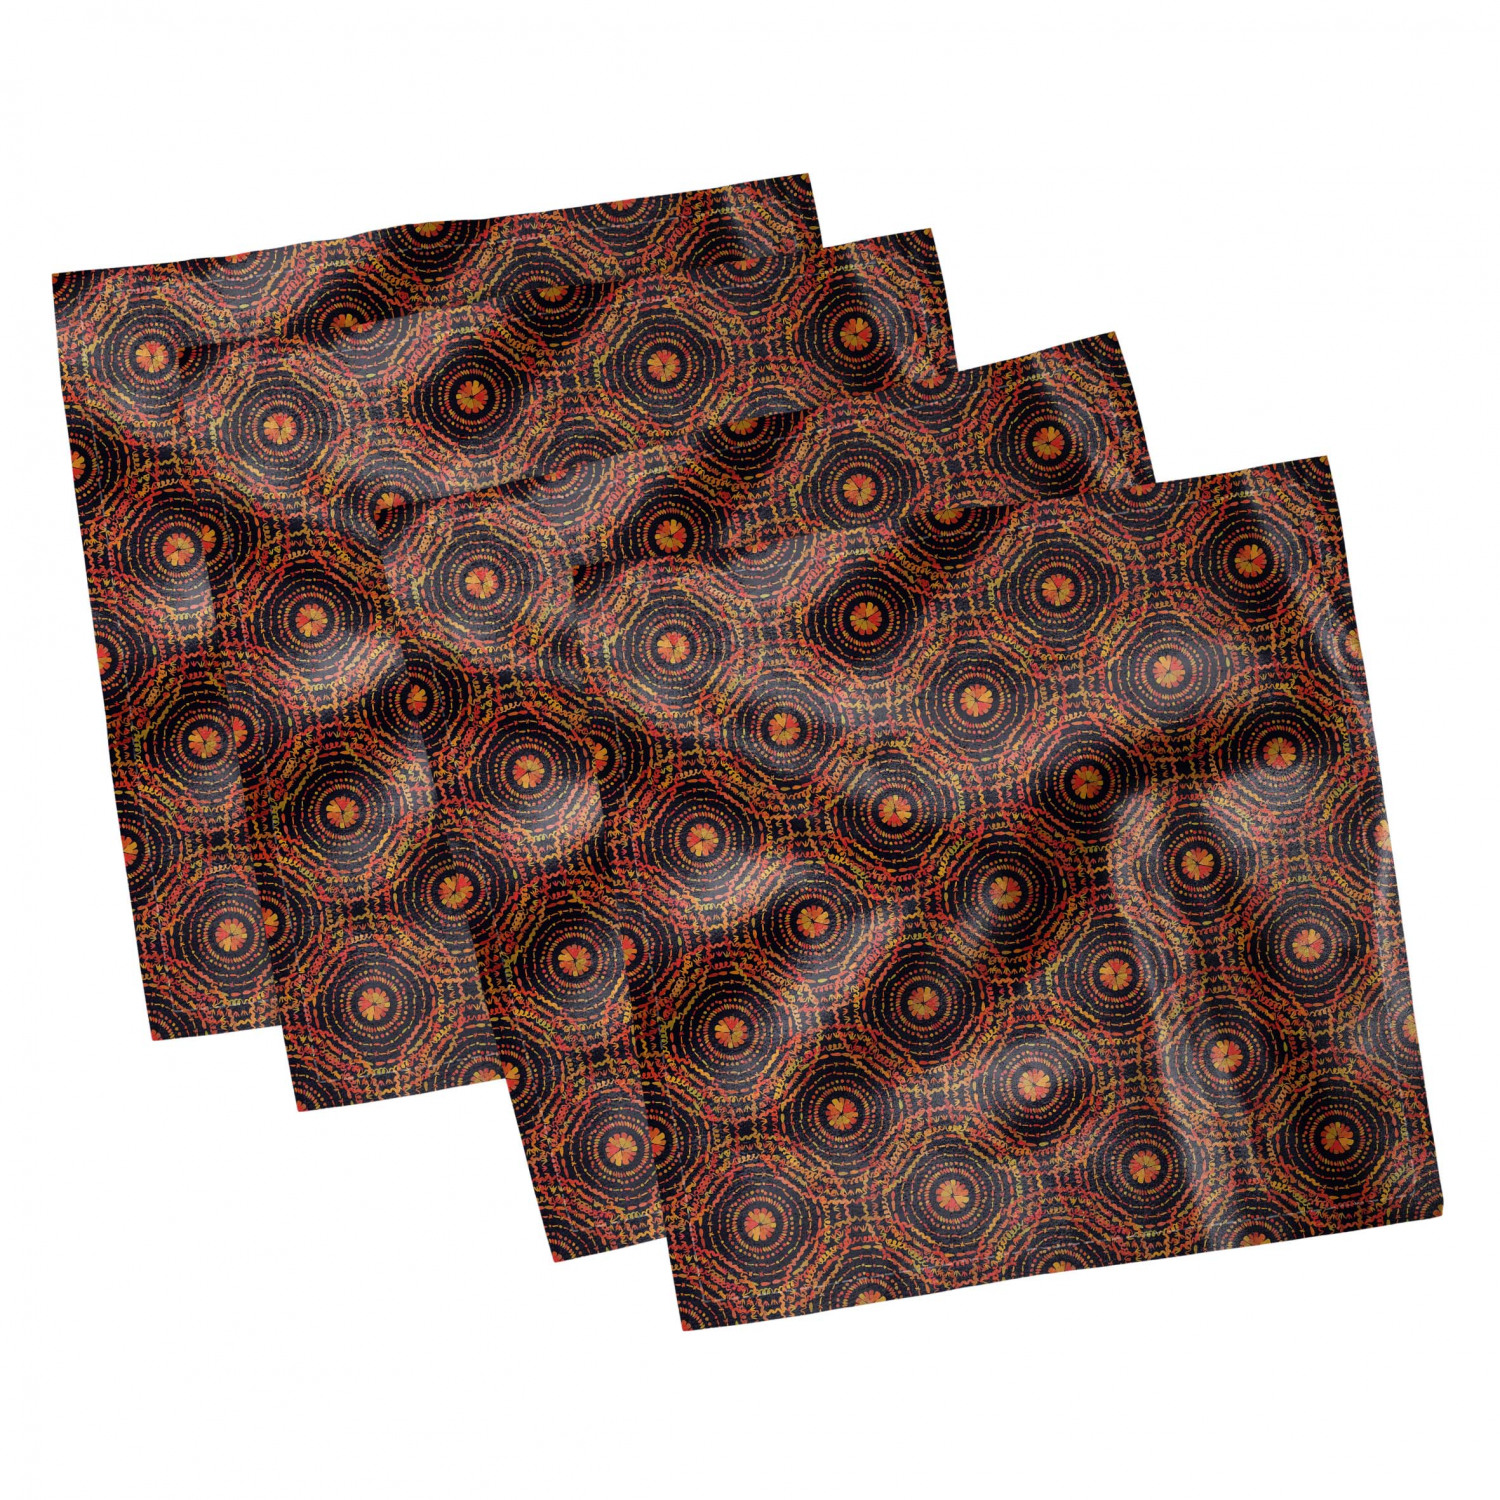 thumbnail 5 - Ambesonne-Autumn-Fall-Decorative-Satin-Napkins-Set-of-4-Party-Dinner-Fabric